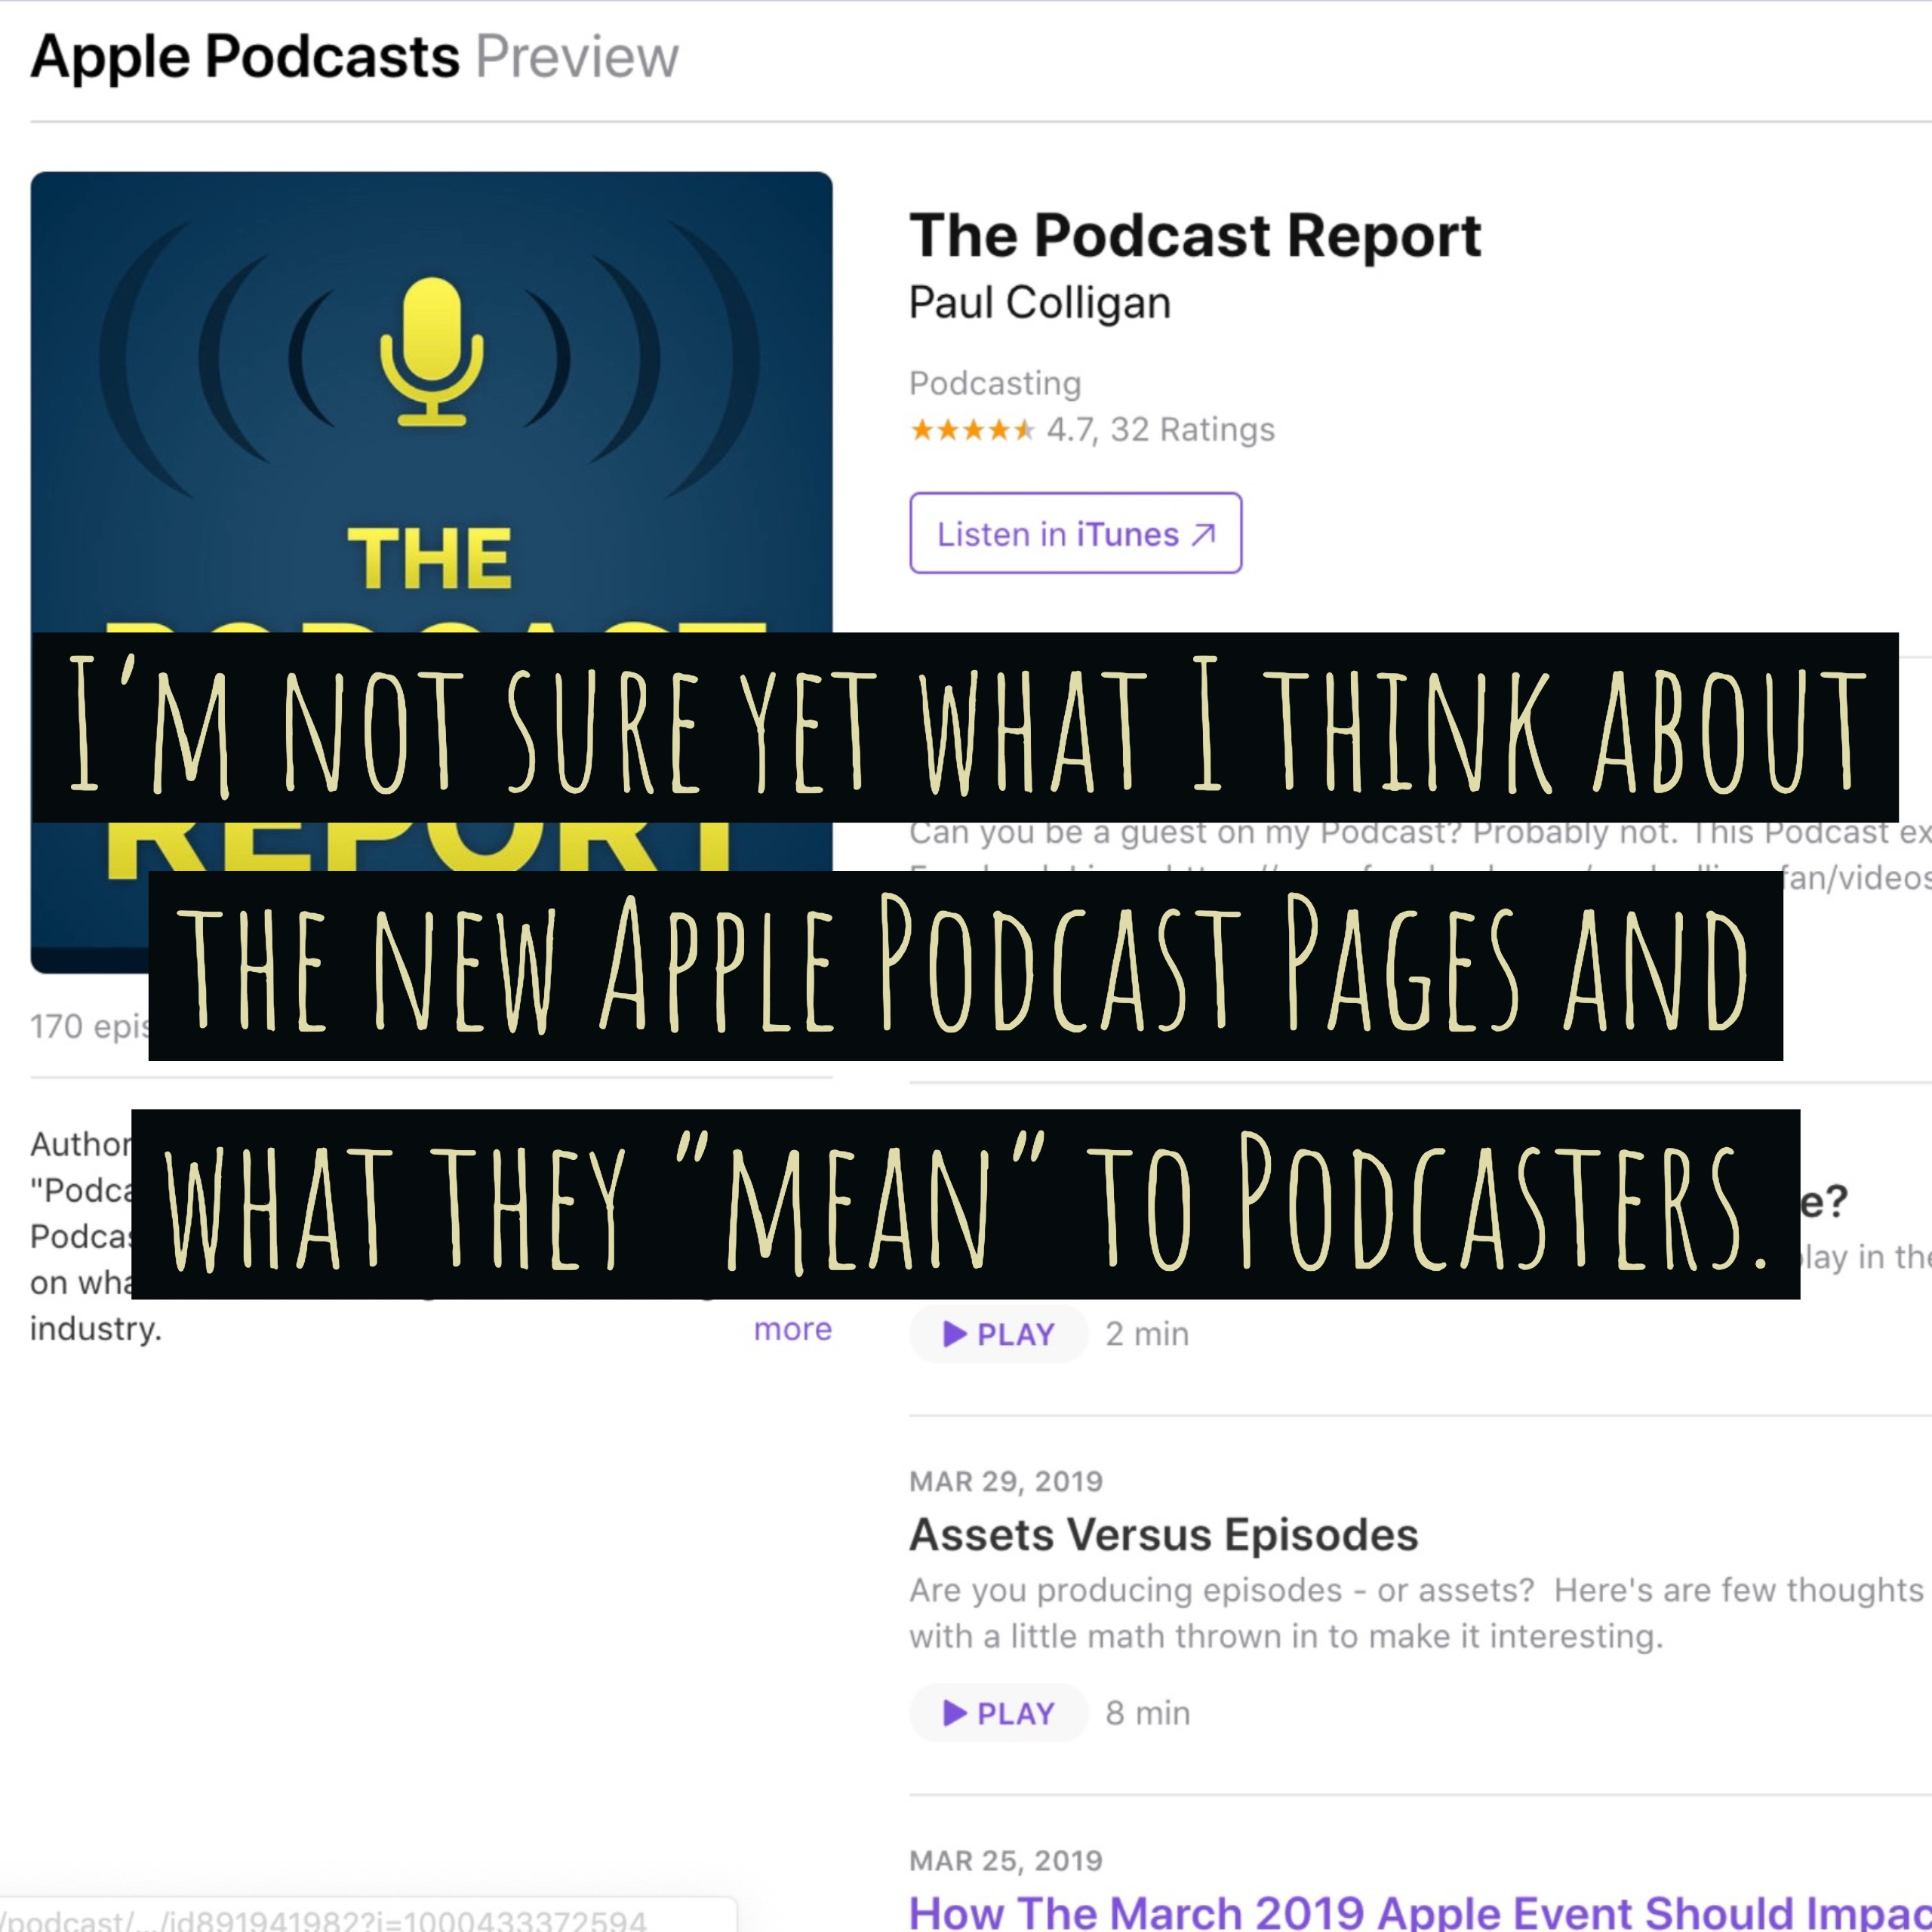 A Few Thoughts On The New Apple Podcast Pages And What They